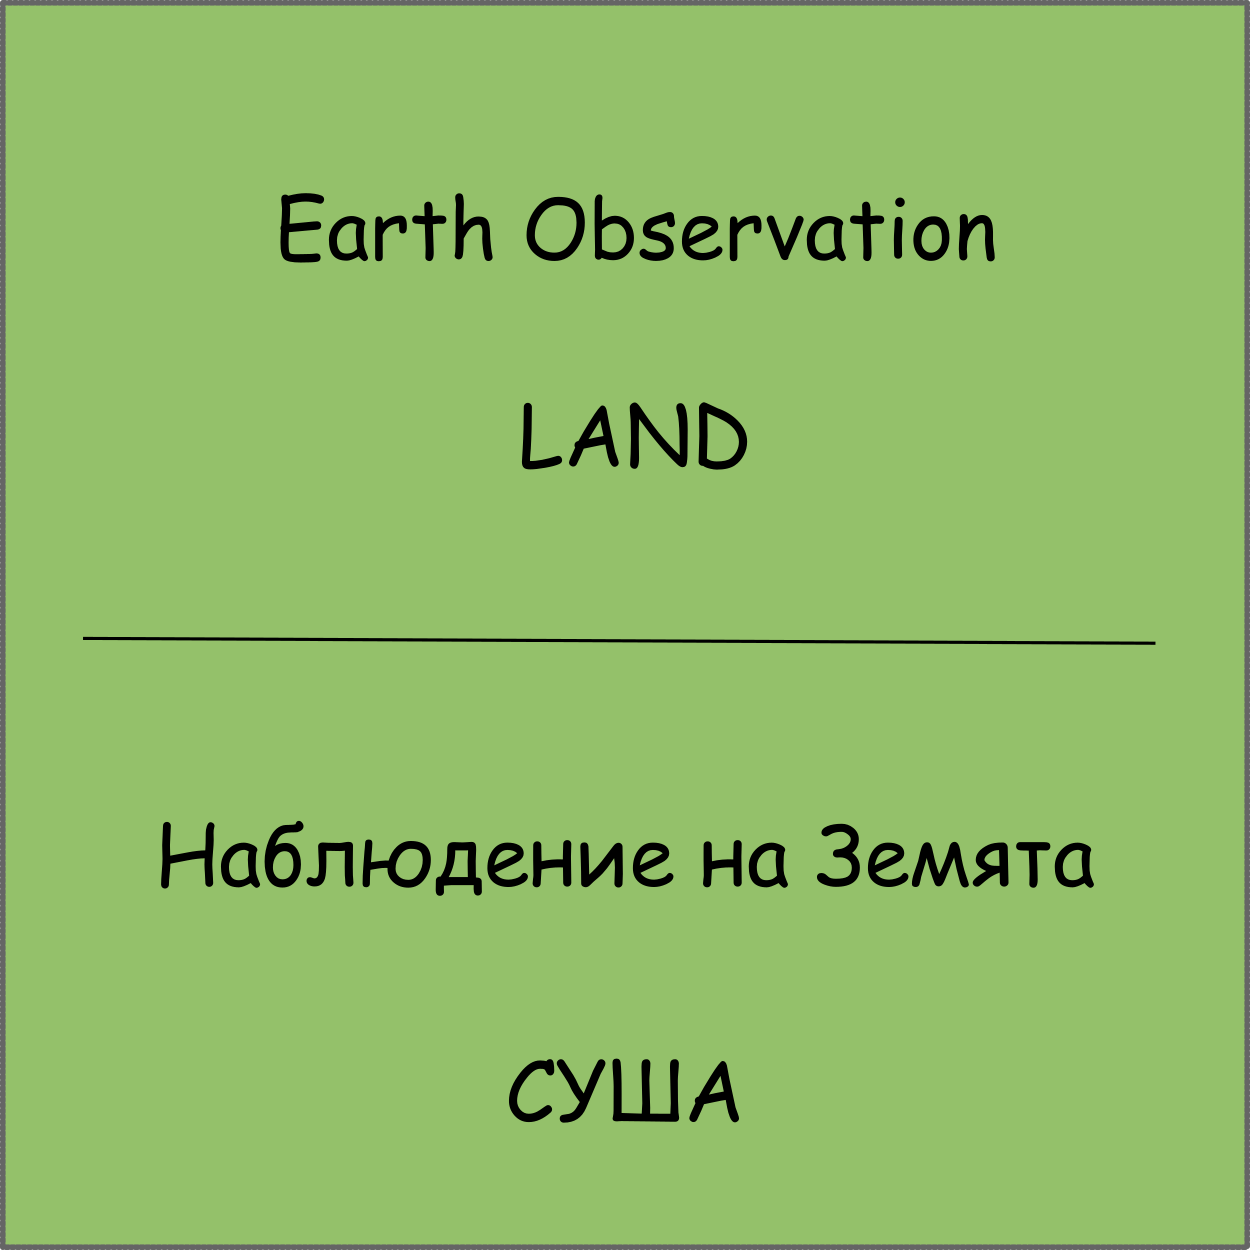 Earth Observation - LAND